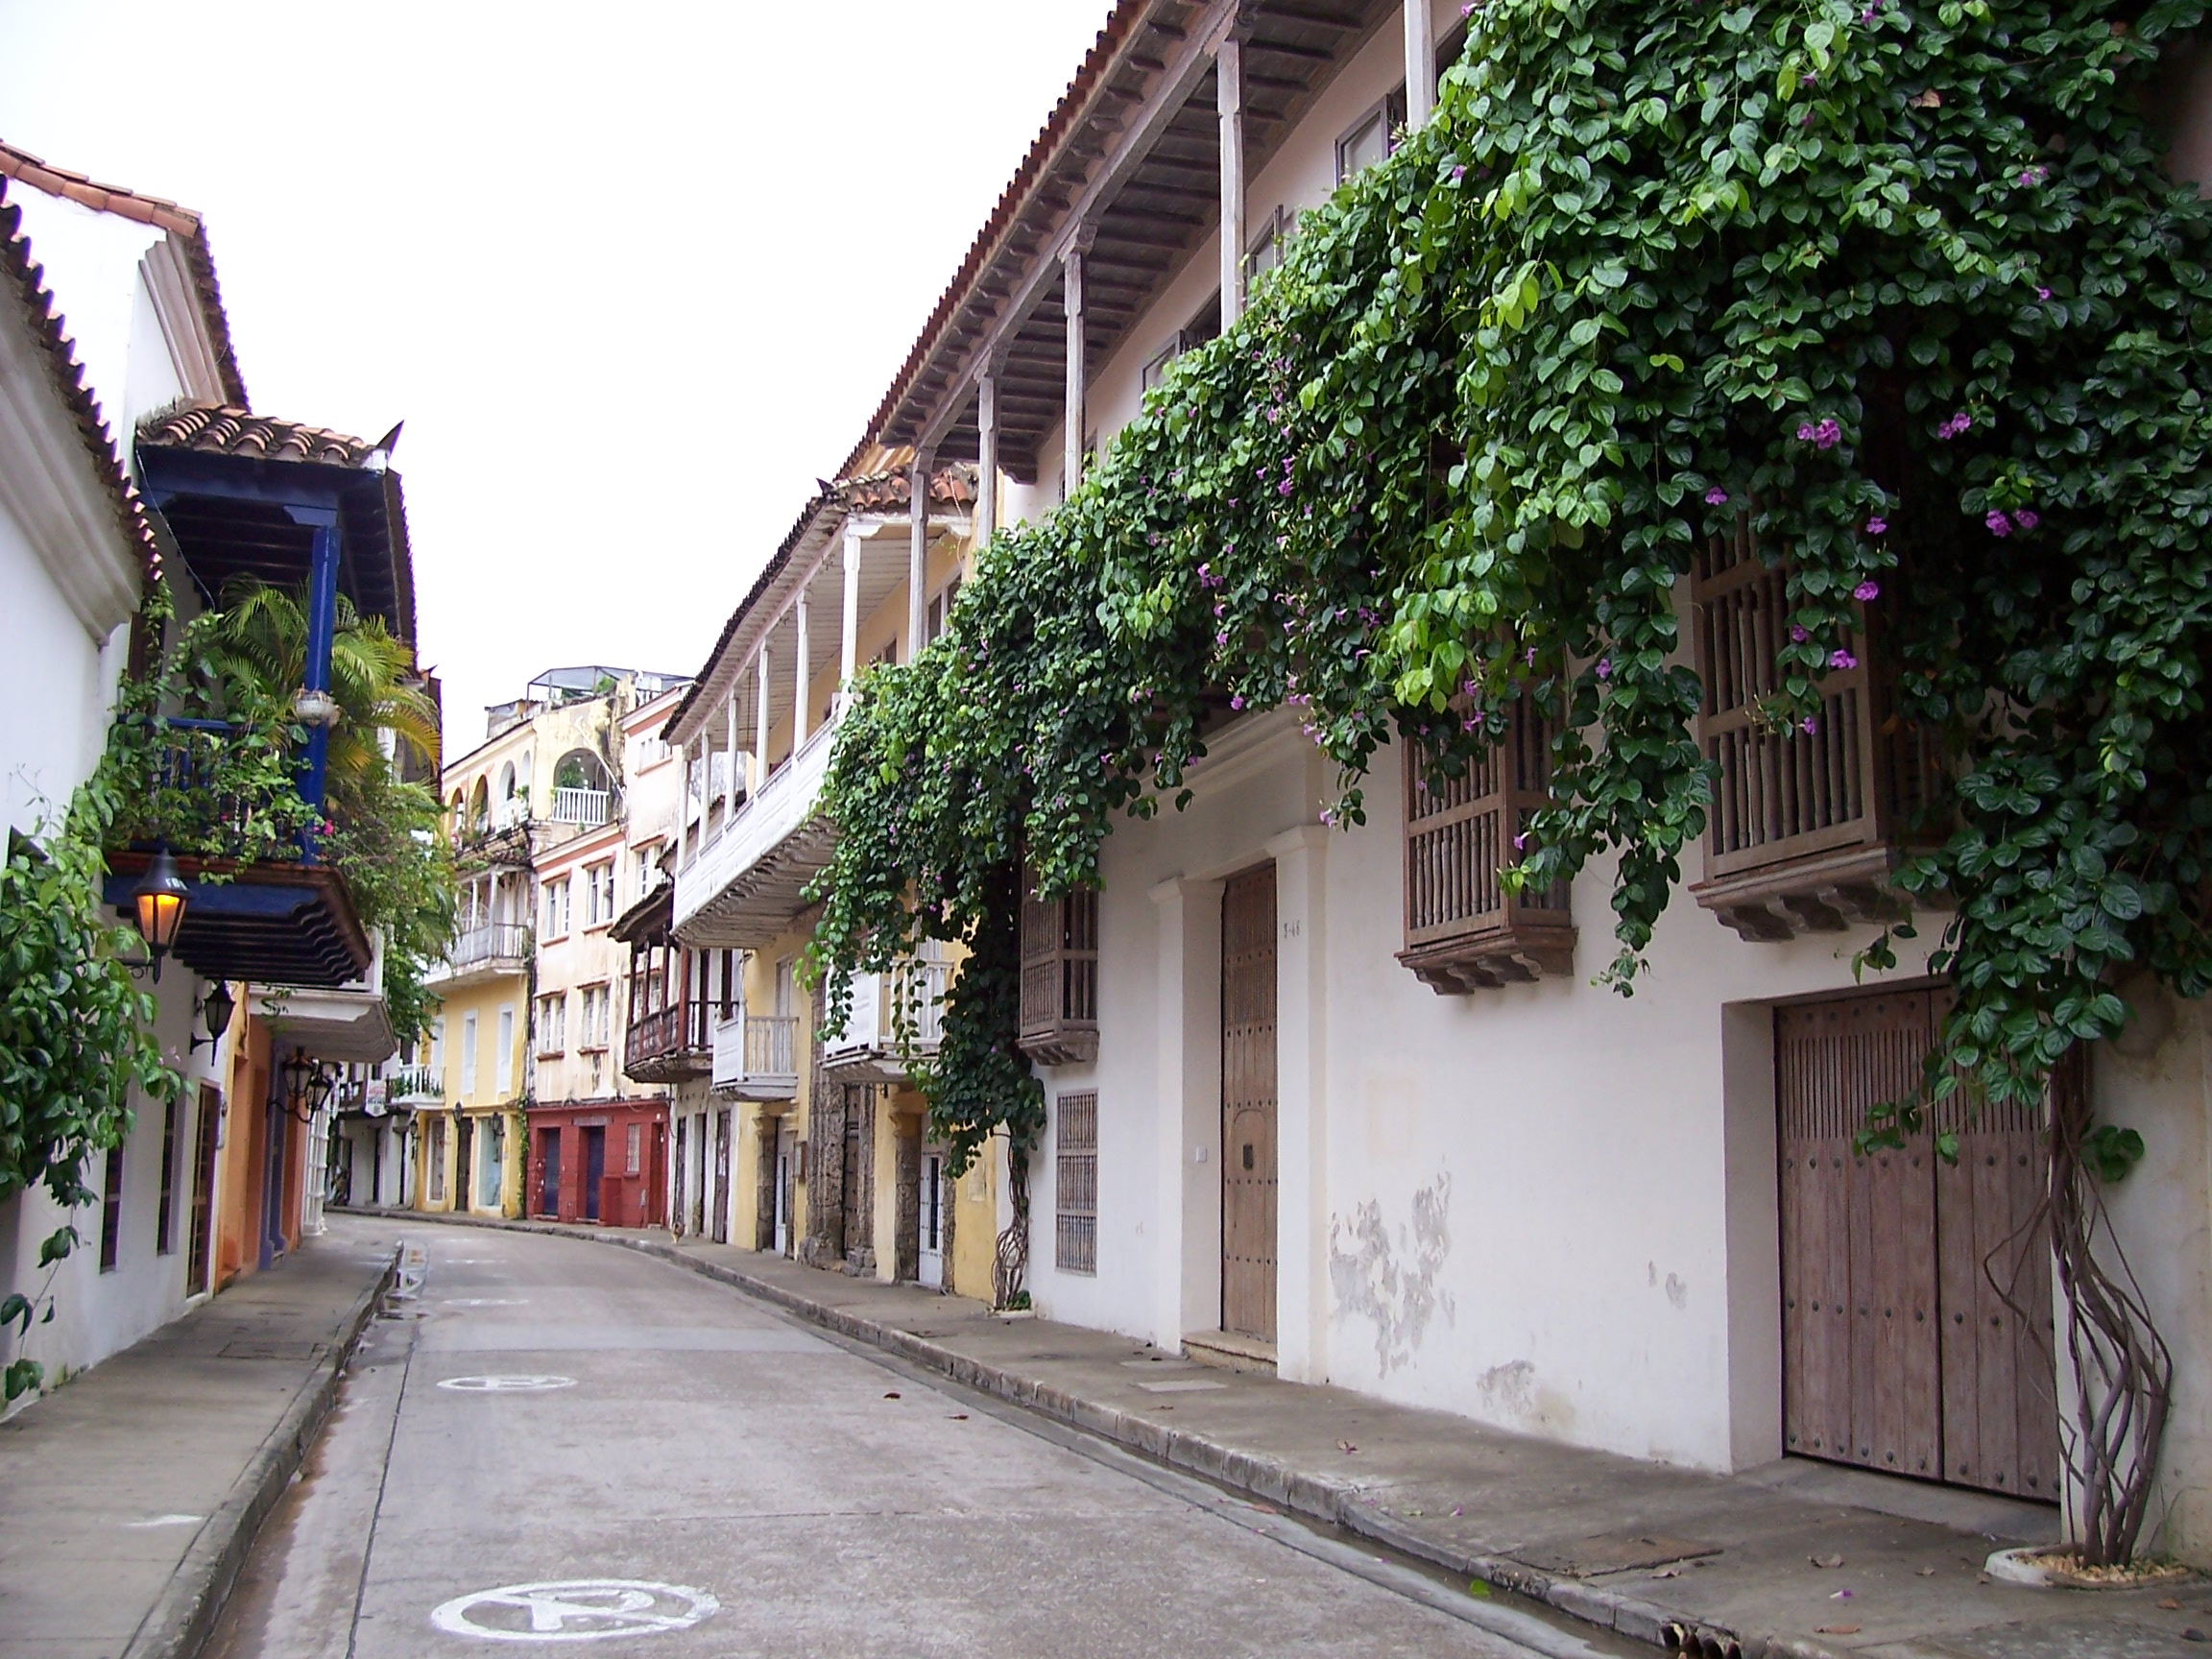 Colorful Balconies in the historical city of Cartagena Colombia